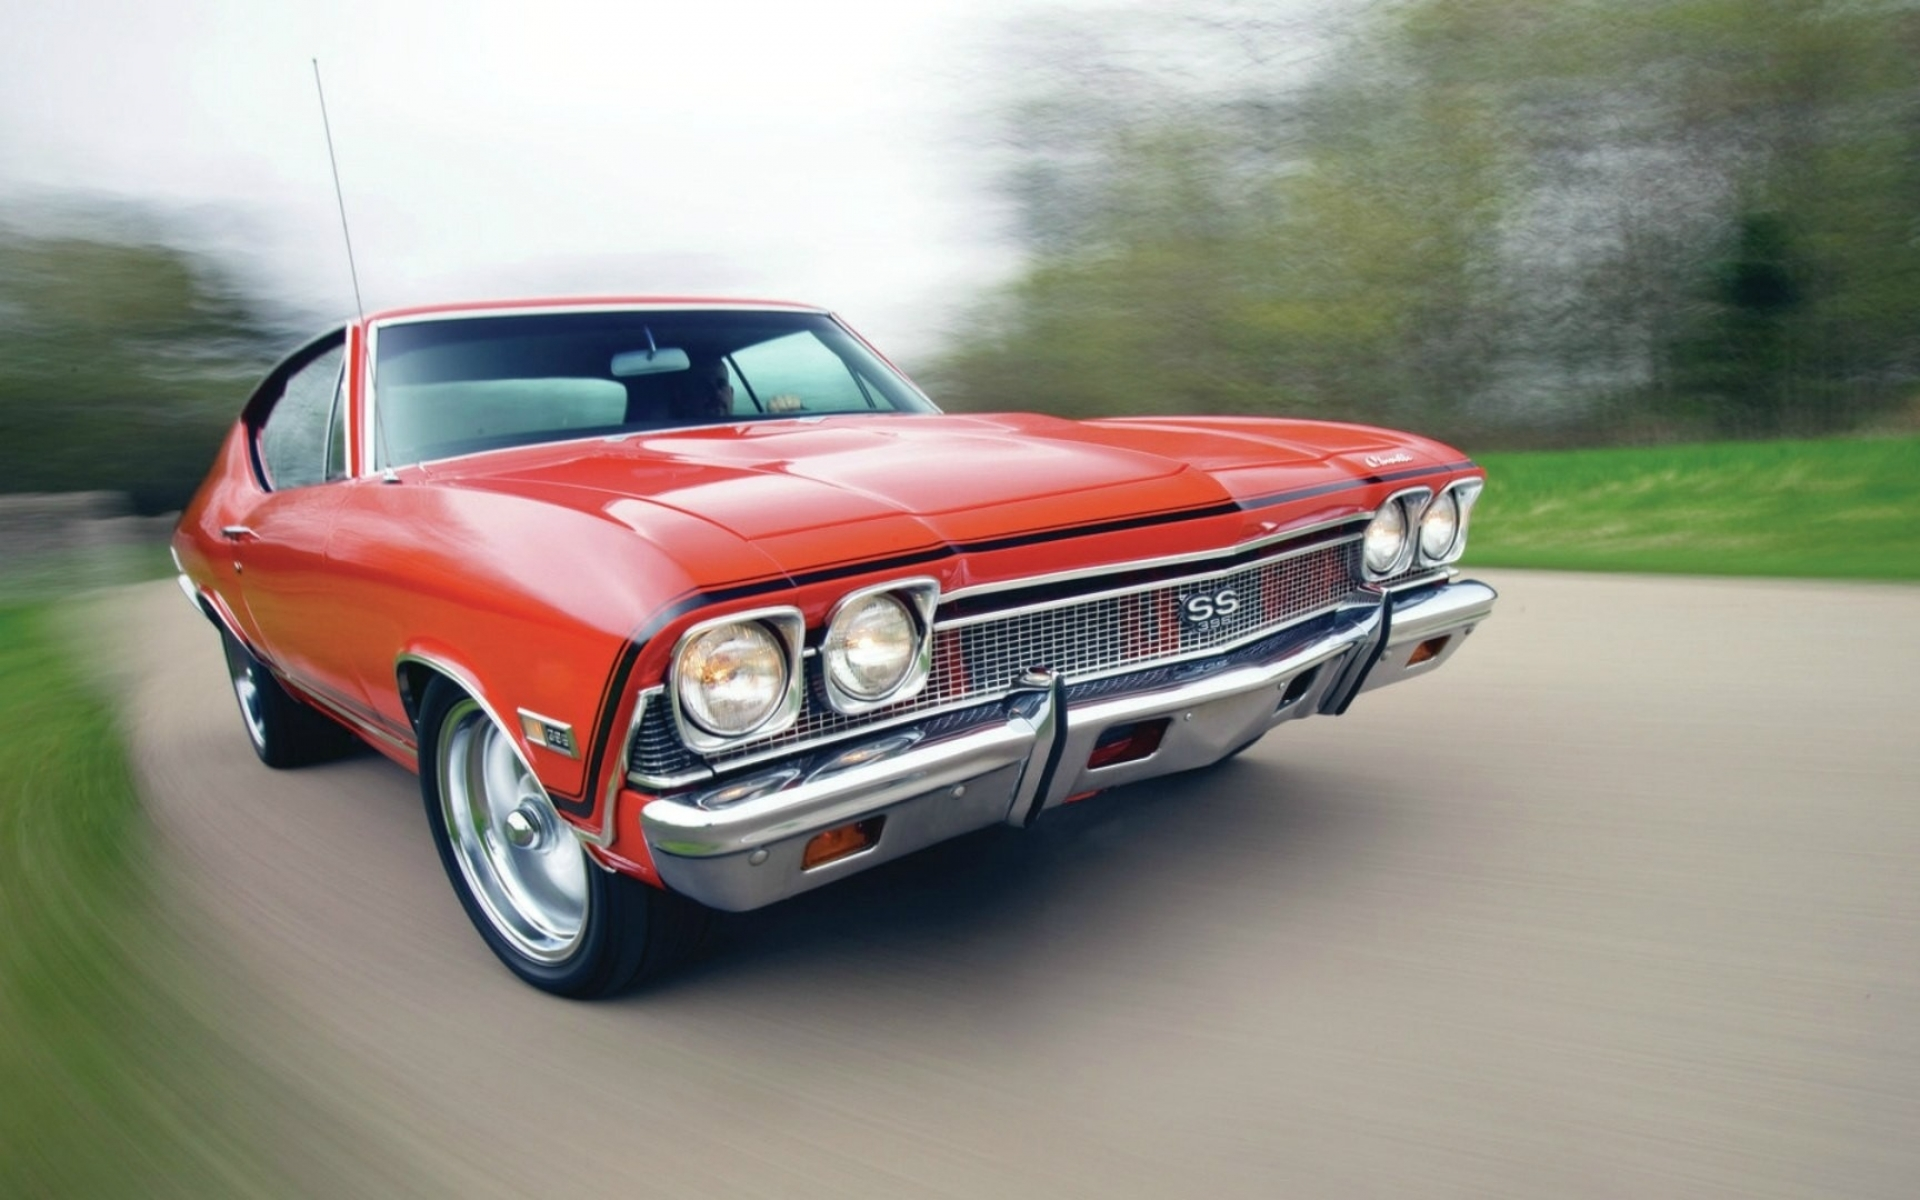 cars chevrolet muscle car Wallpaper Wallpapers Download 1920x1200